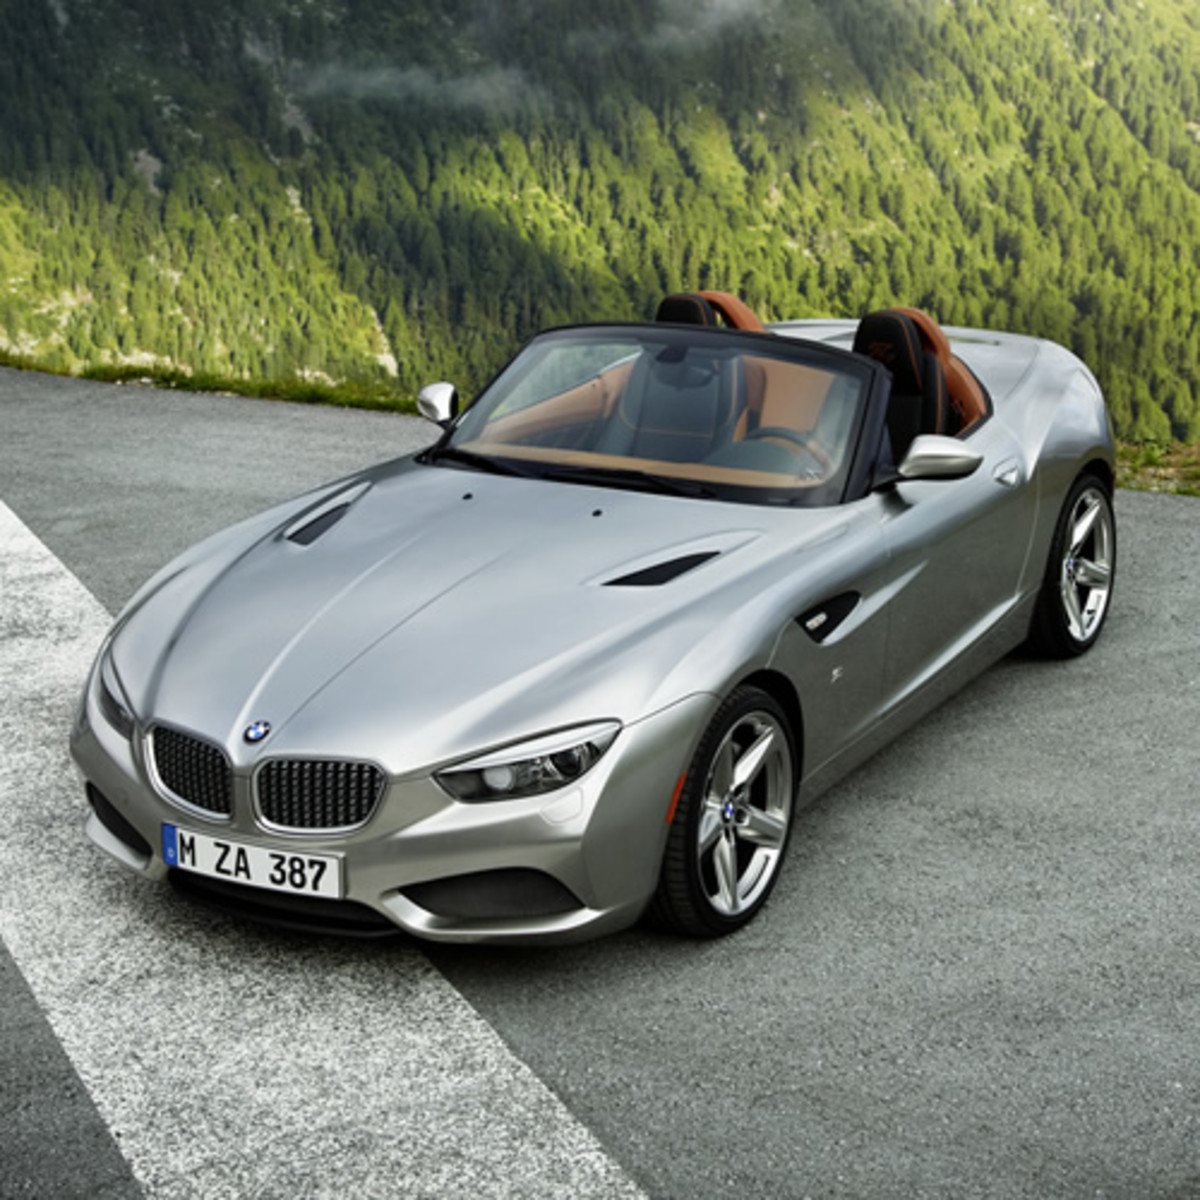 Bmw Z4 2 0 Review 2006: BMW Zagato Roadster